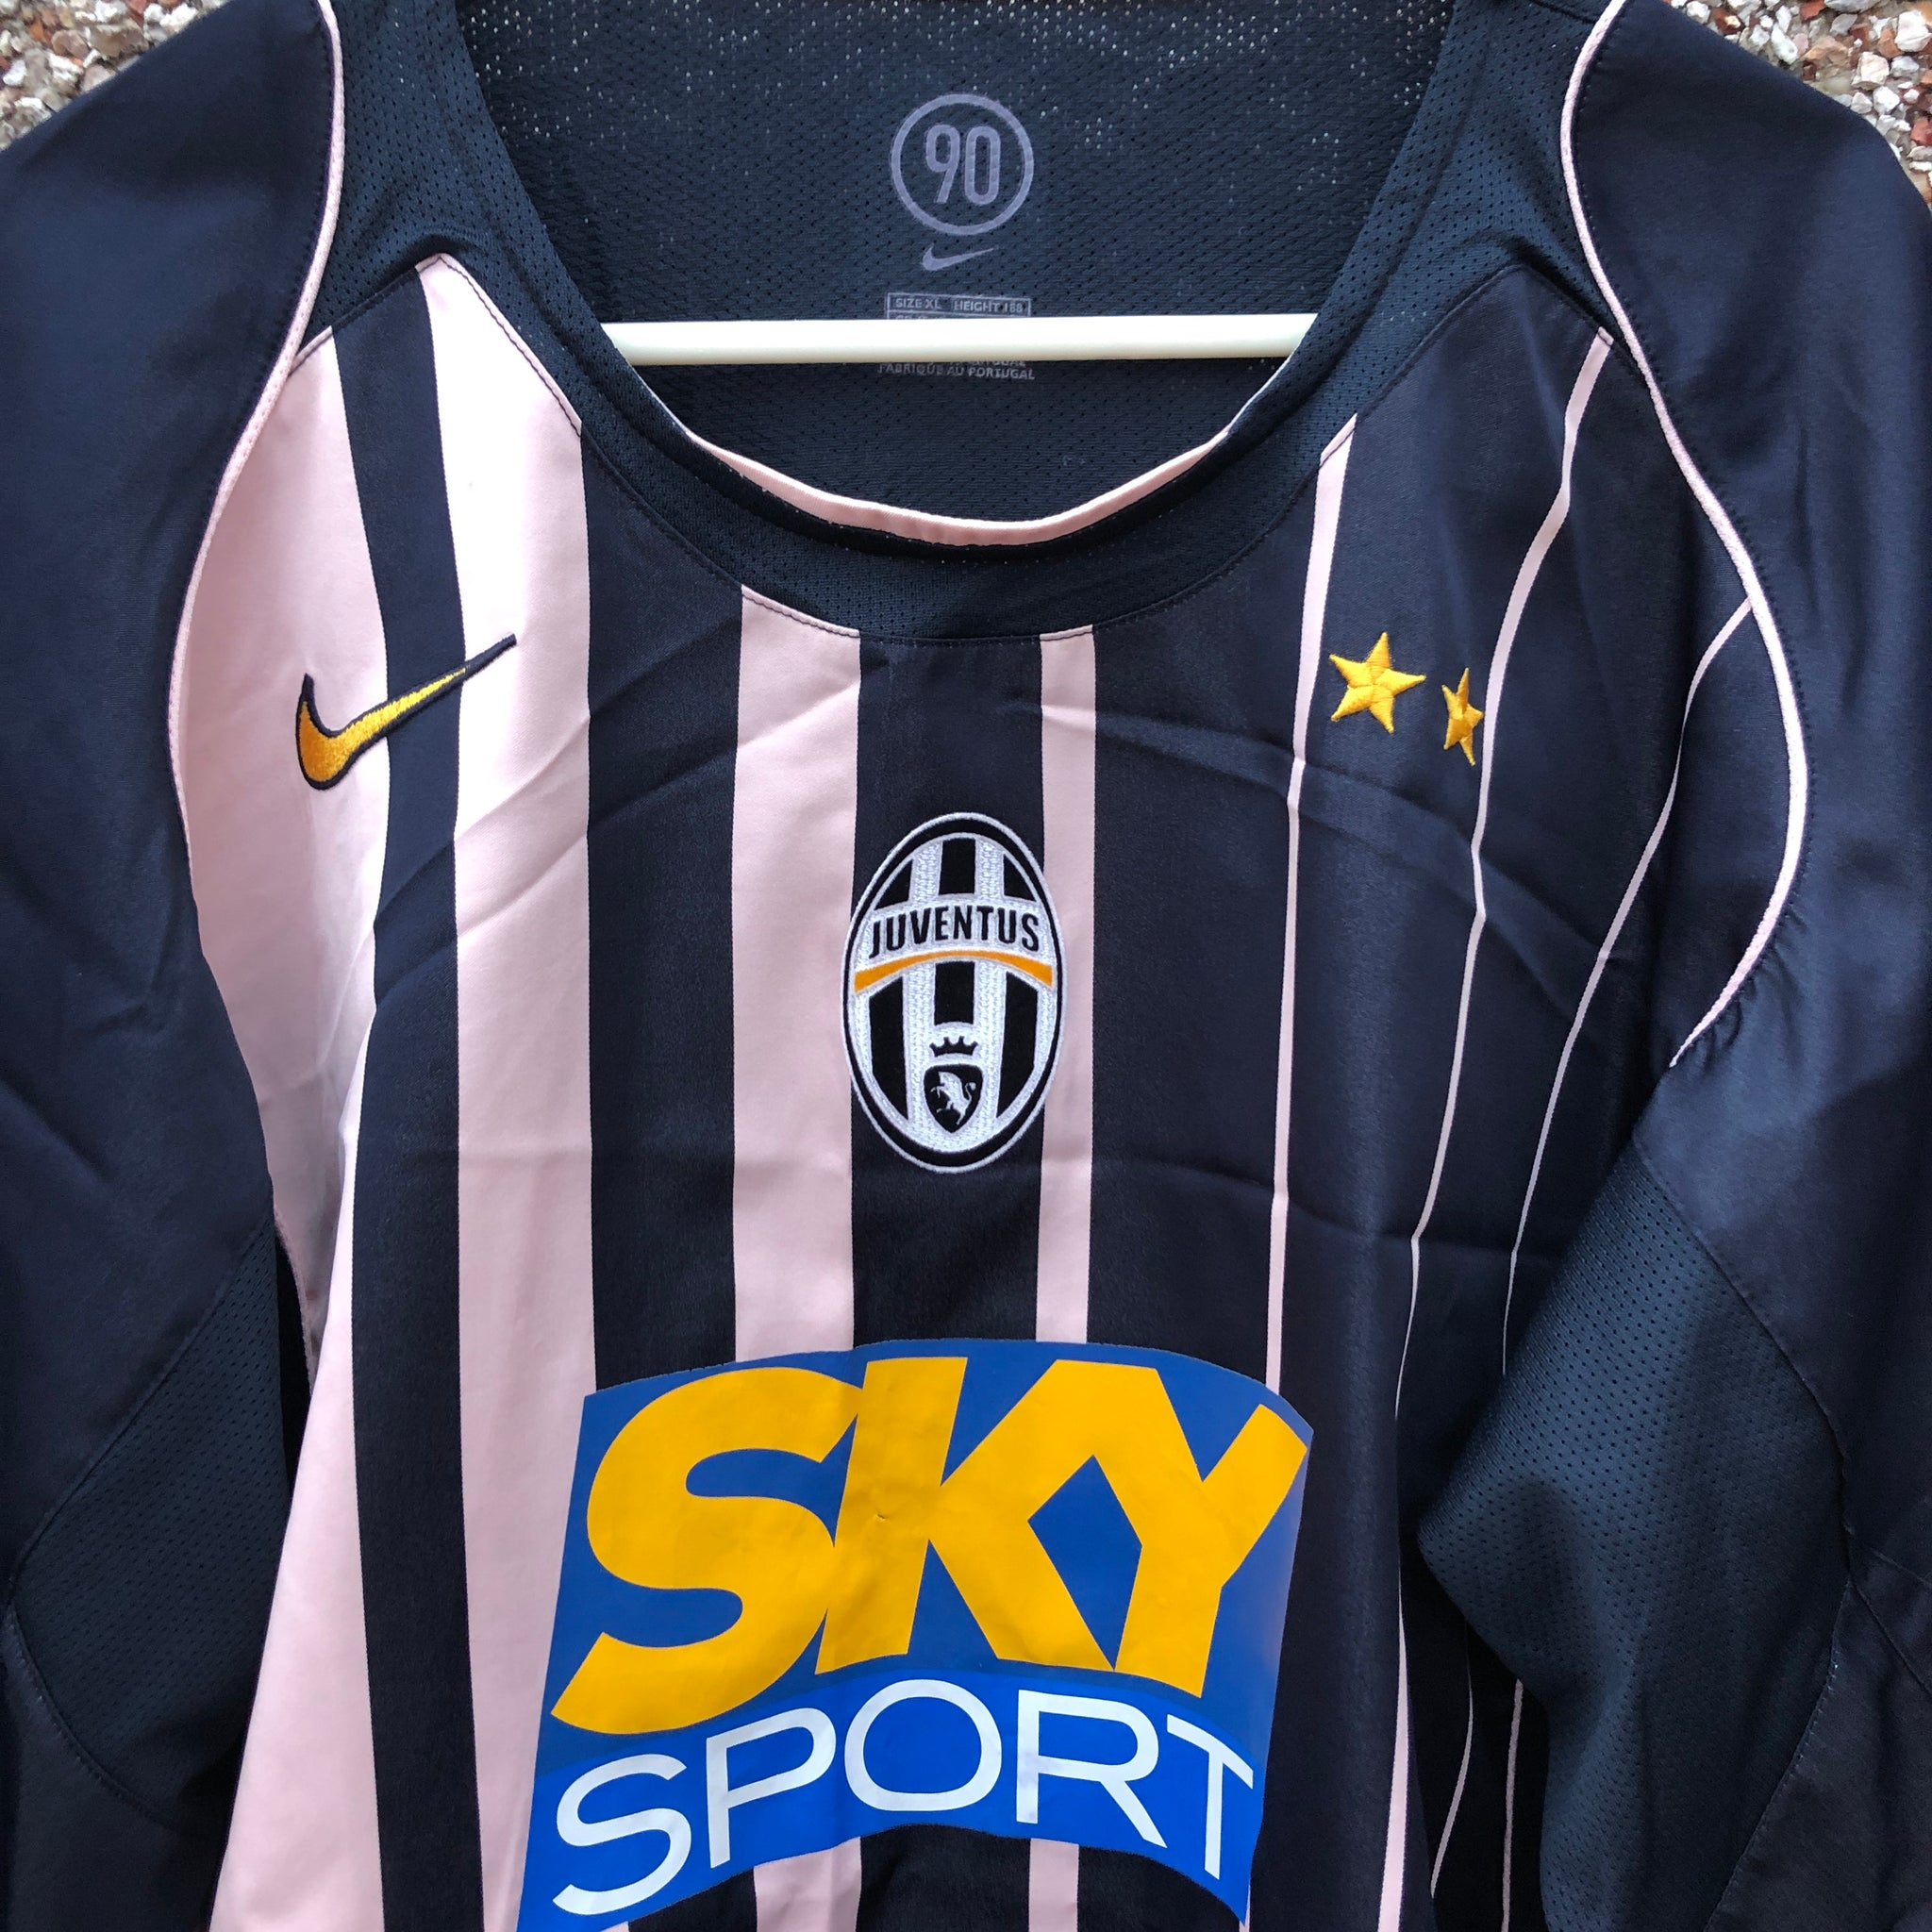 premium selection 878fe e818e 2004 2005 Juventus away football shirt - XL